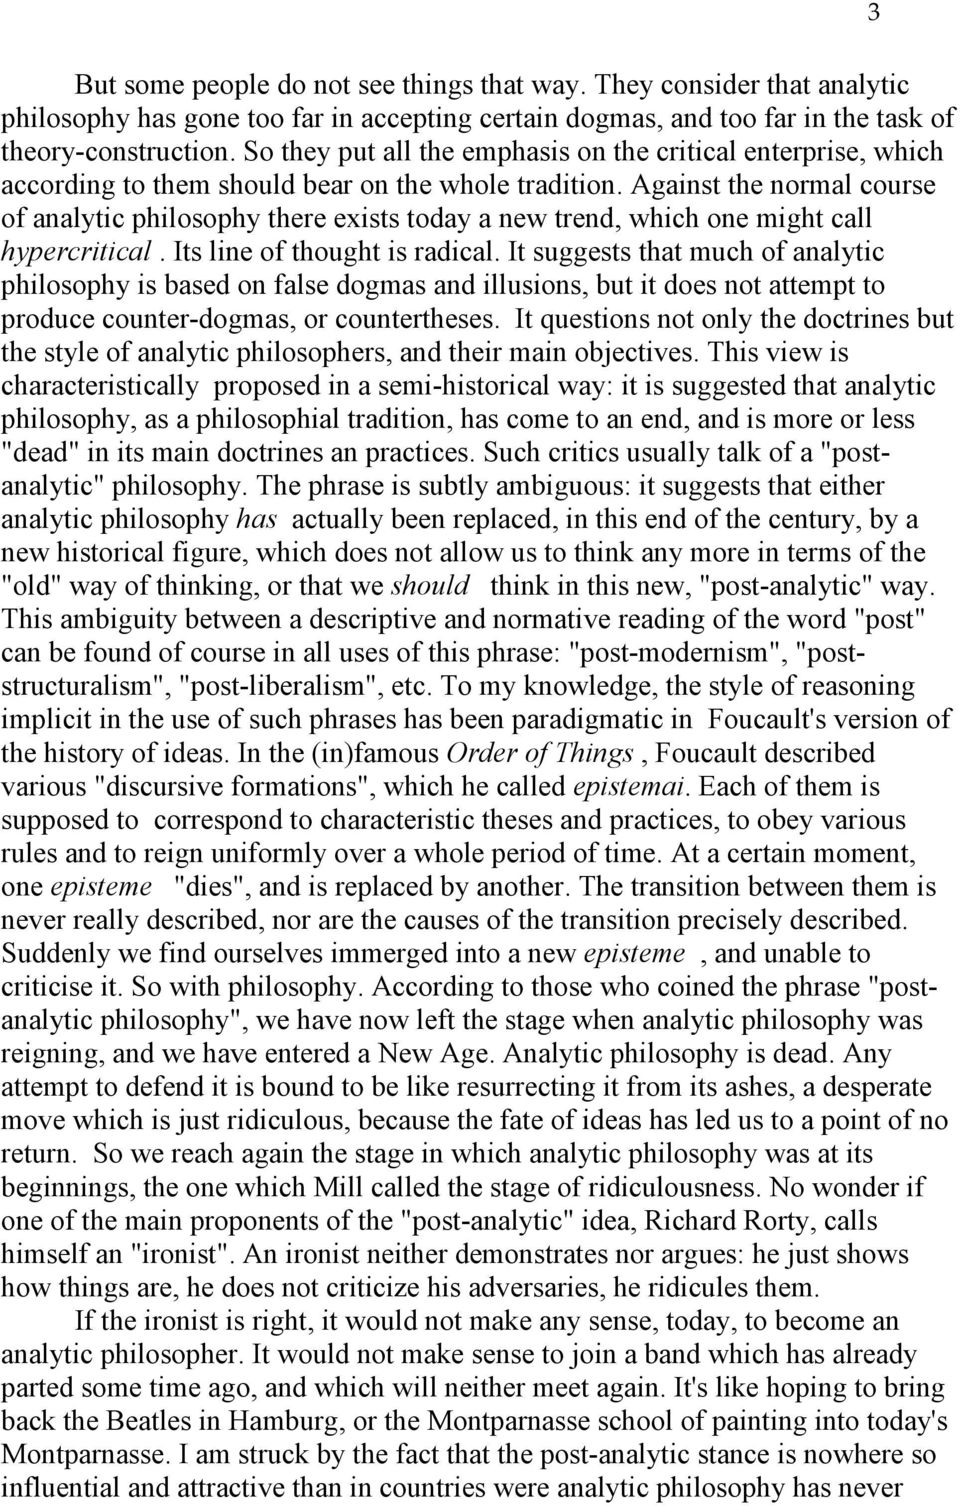 Against the normal course of analytic philosophy there exists today a new trend, which one might call hypercritical. Its line of thought is radical.